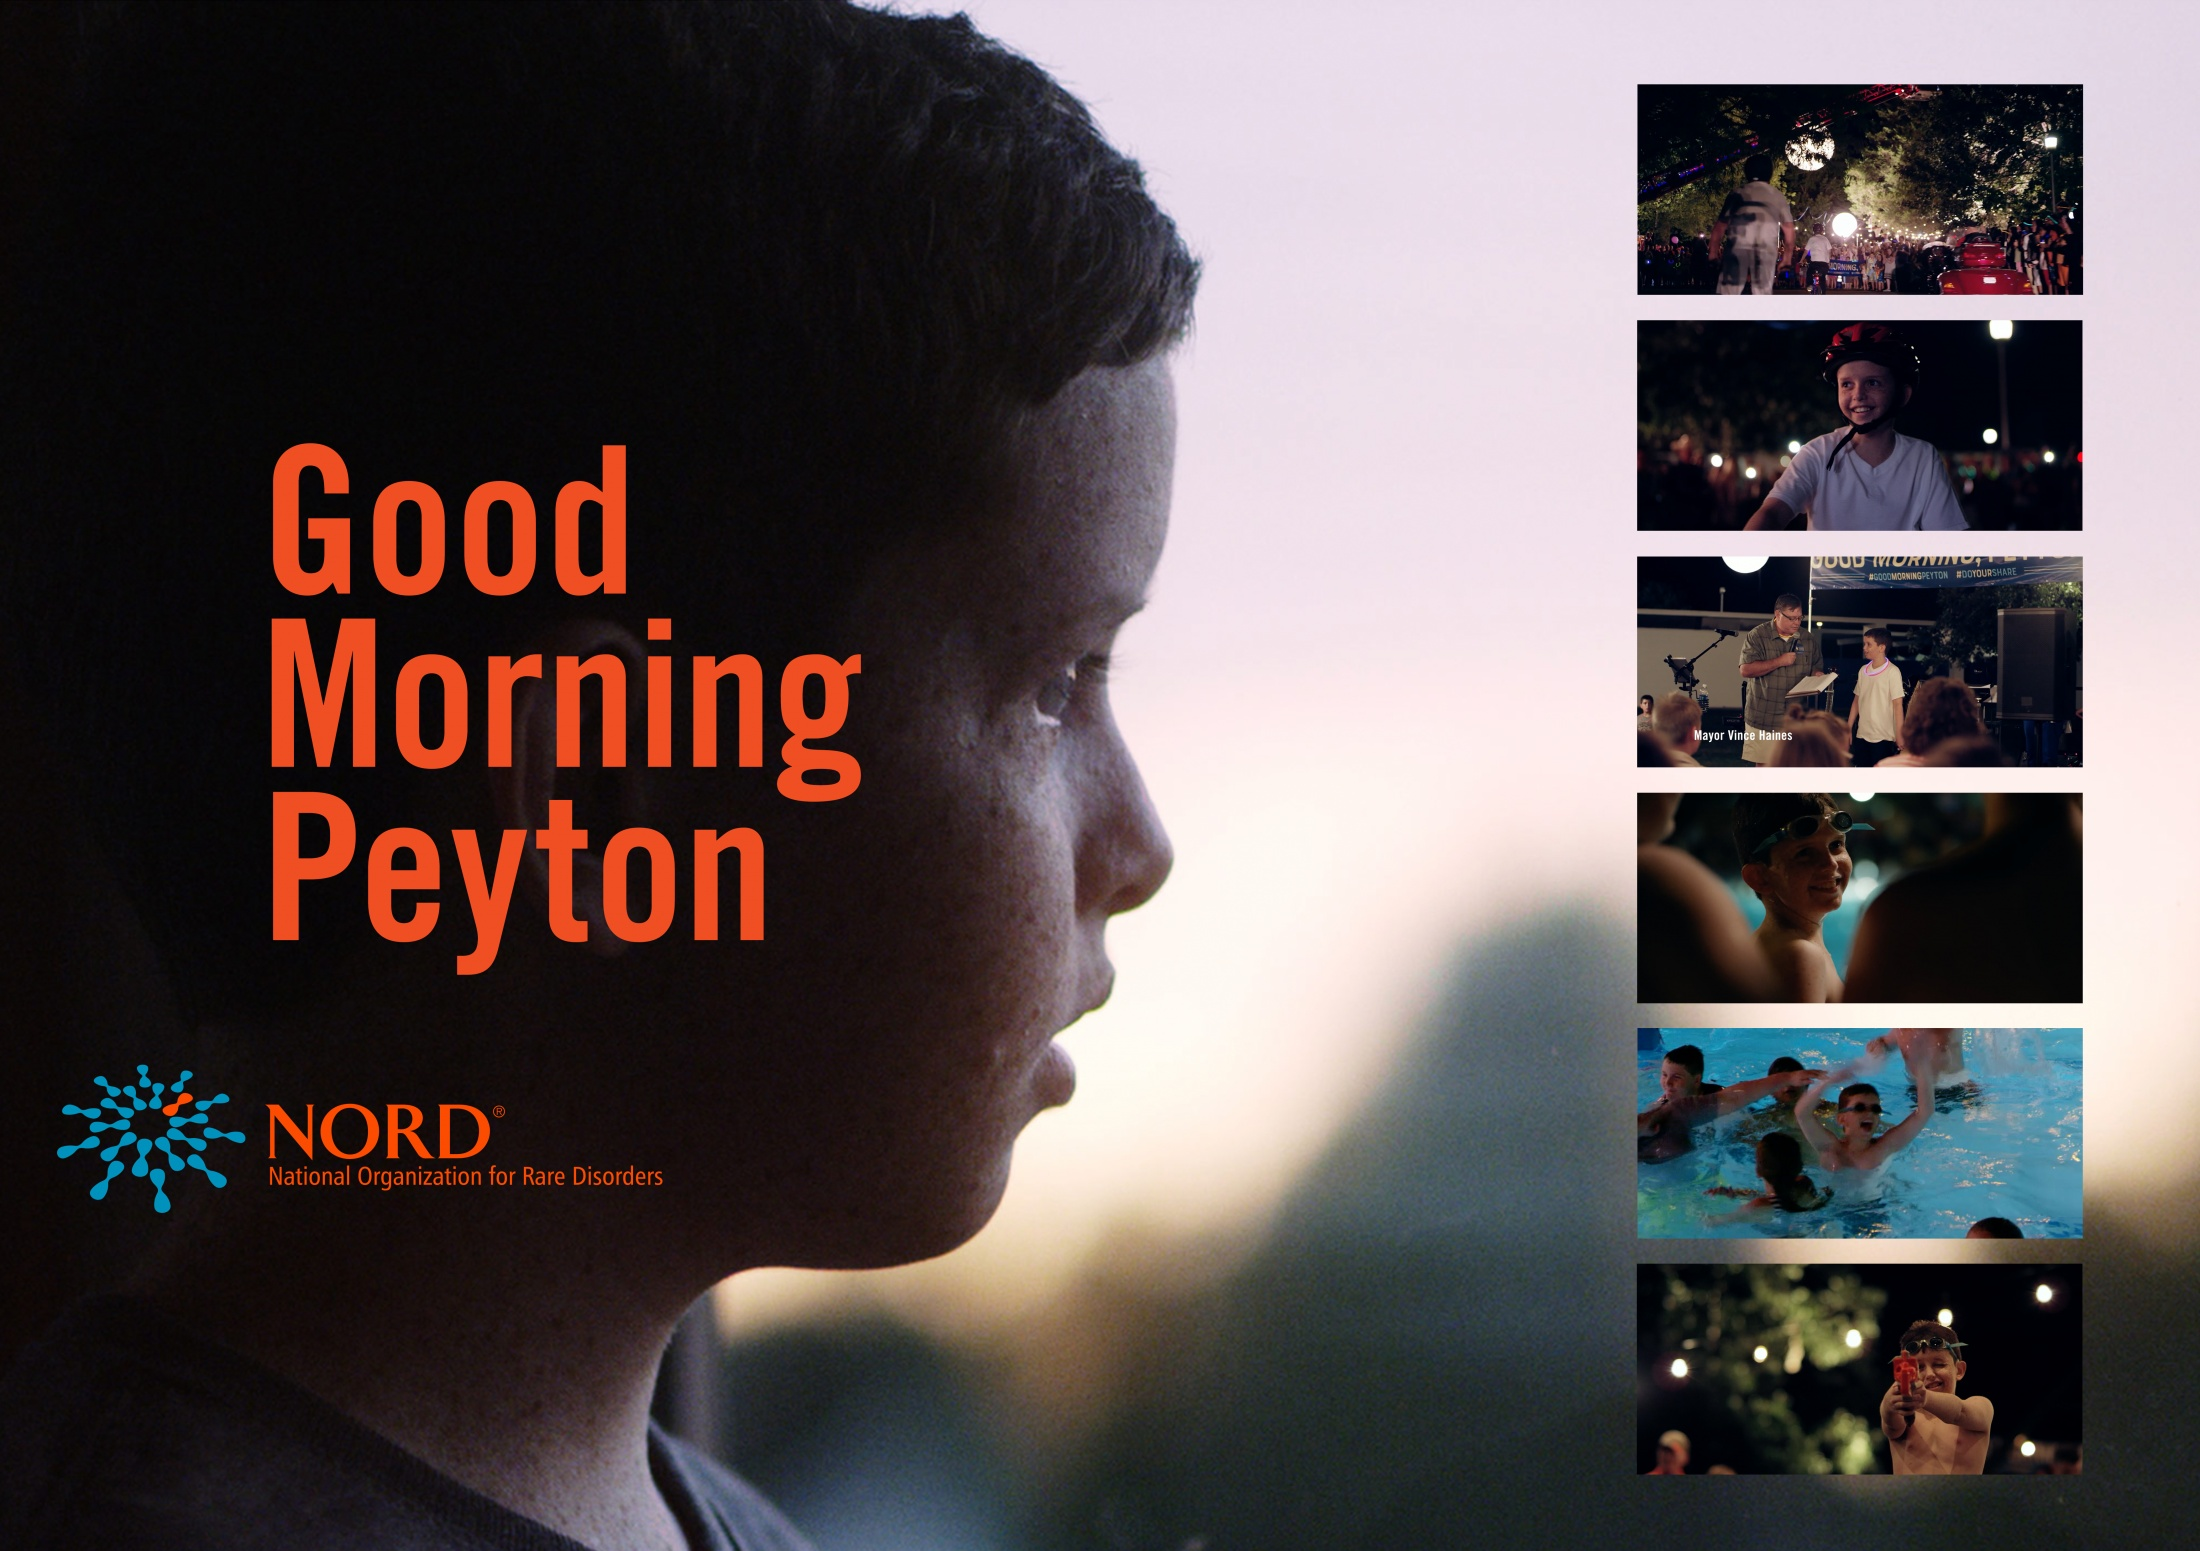 Image Media for Good Morning Peyton